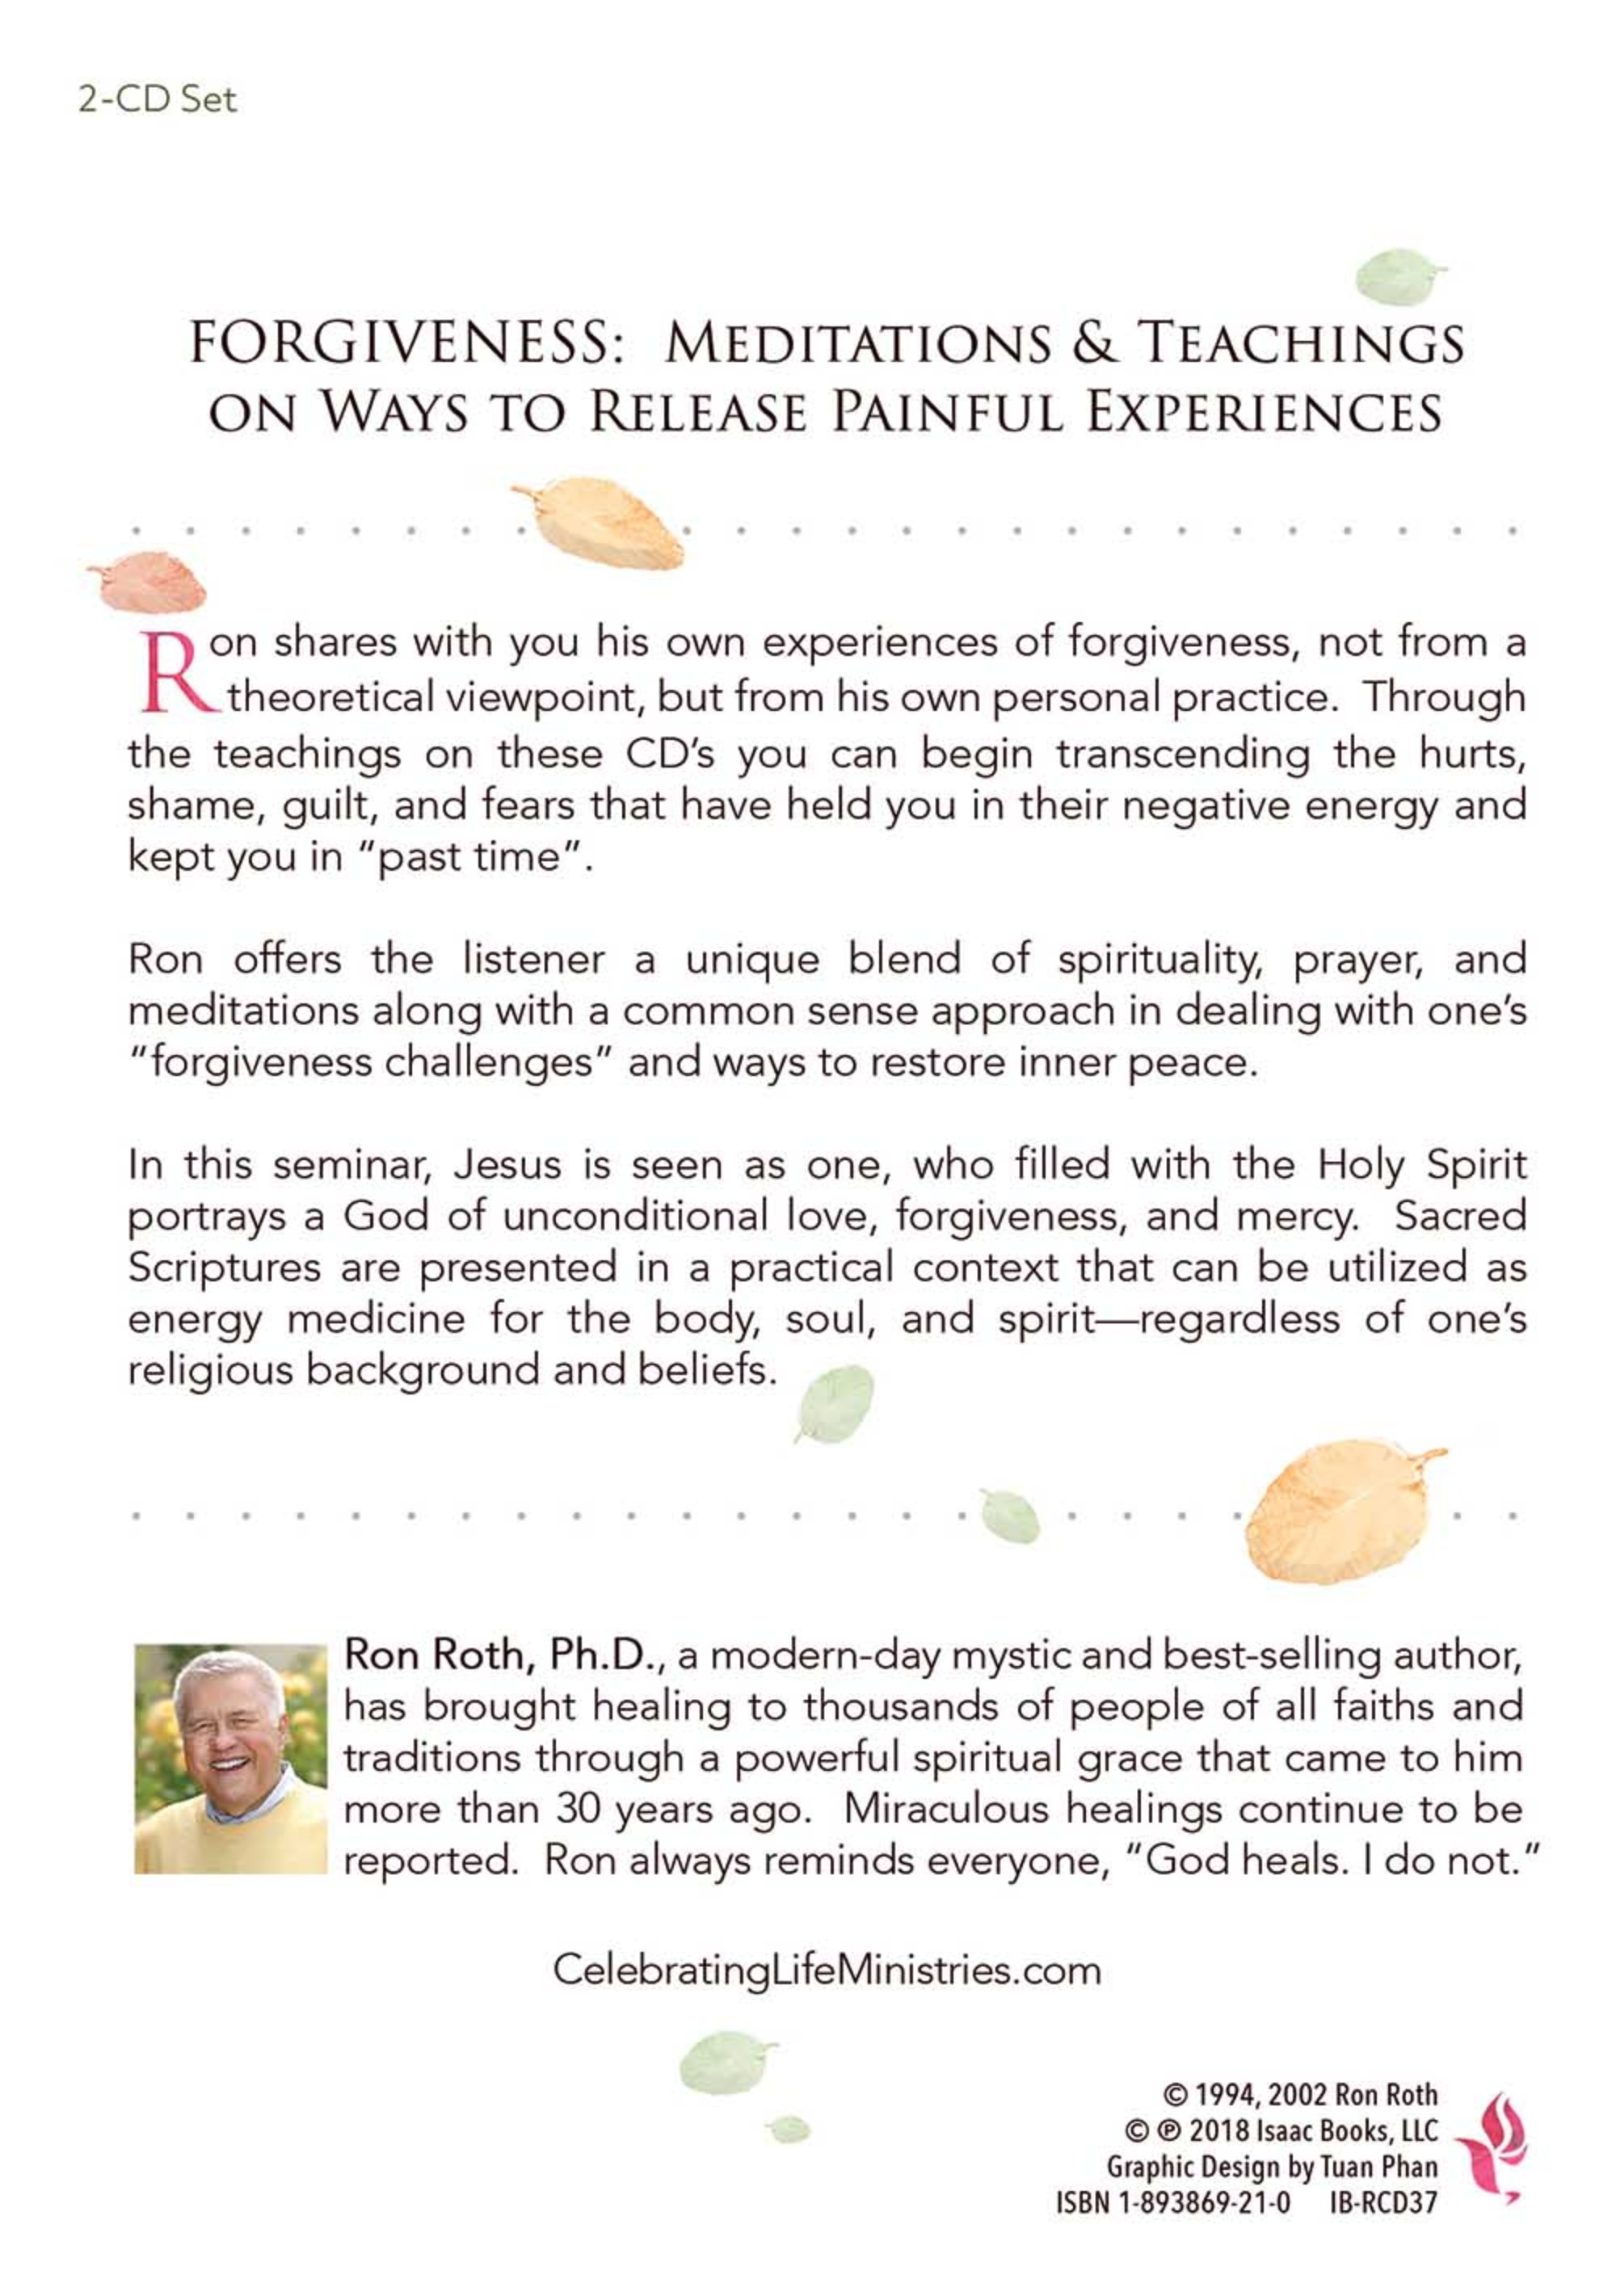 Forgiveness: Meditations & Teachings on Ways to Release Painful Experiences